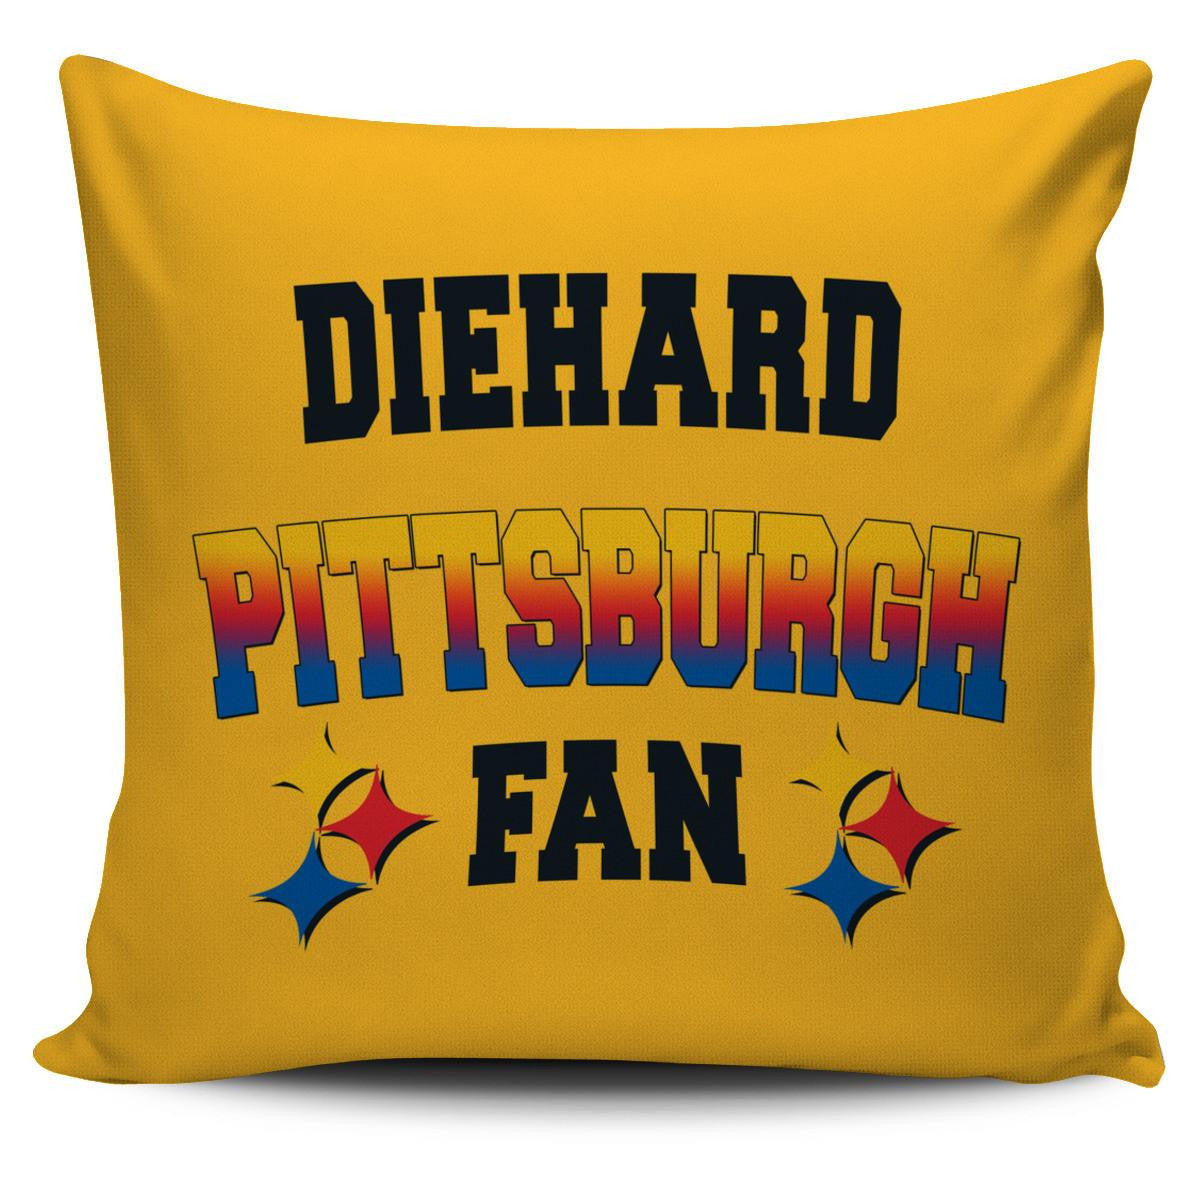 Pittsburgh Collector Pillowcases